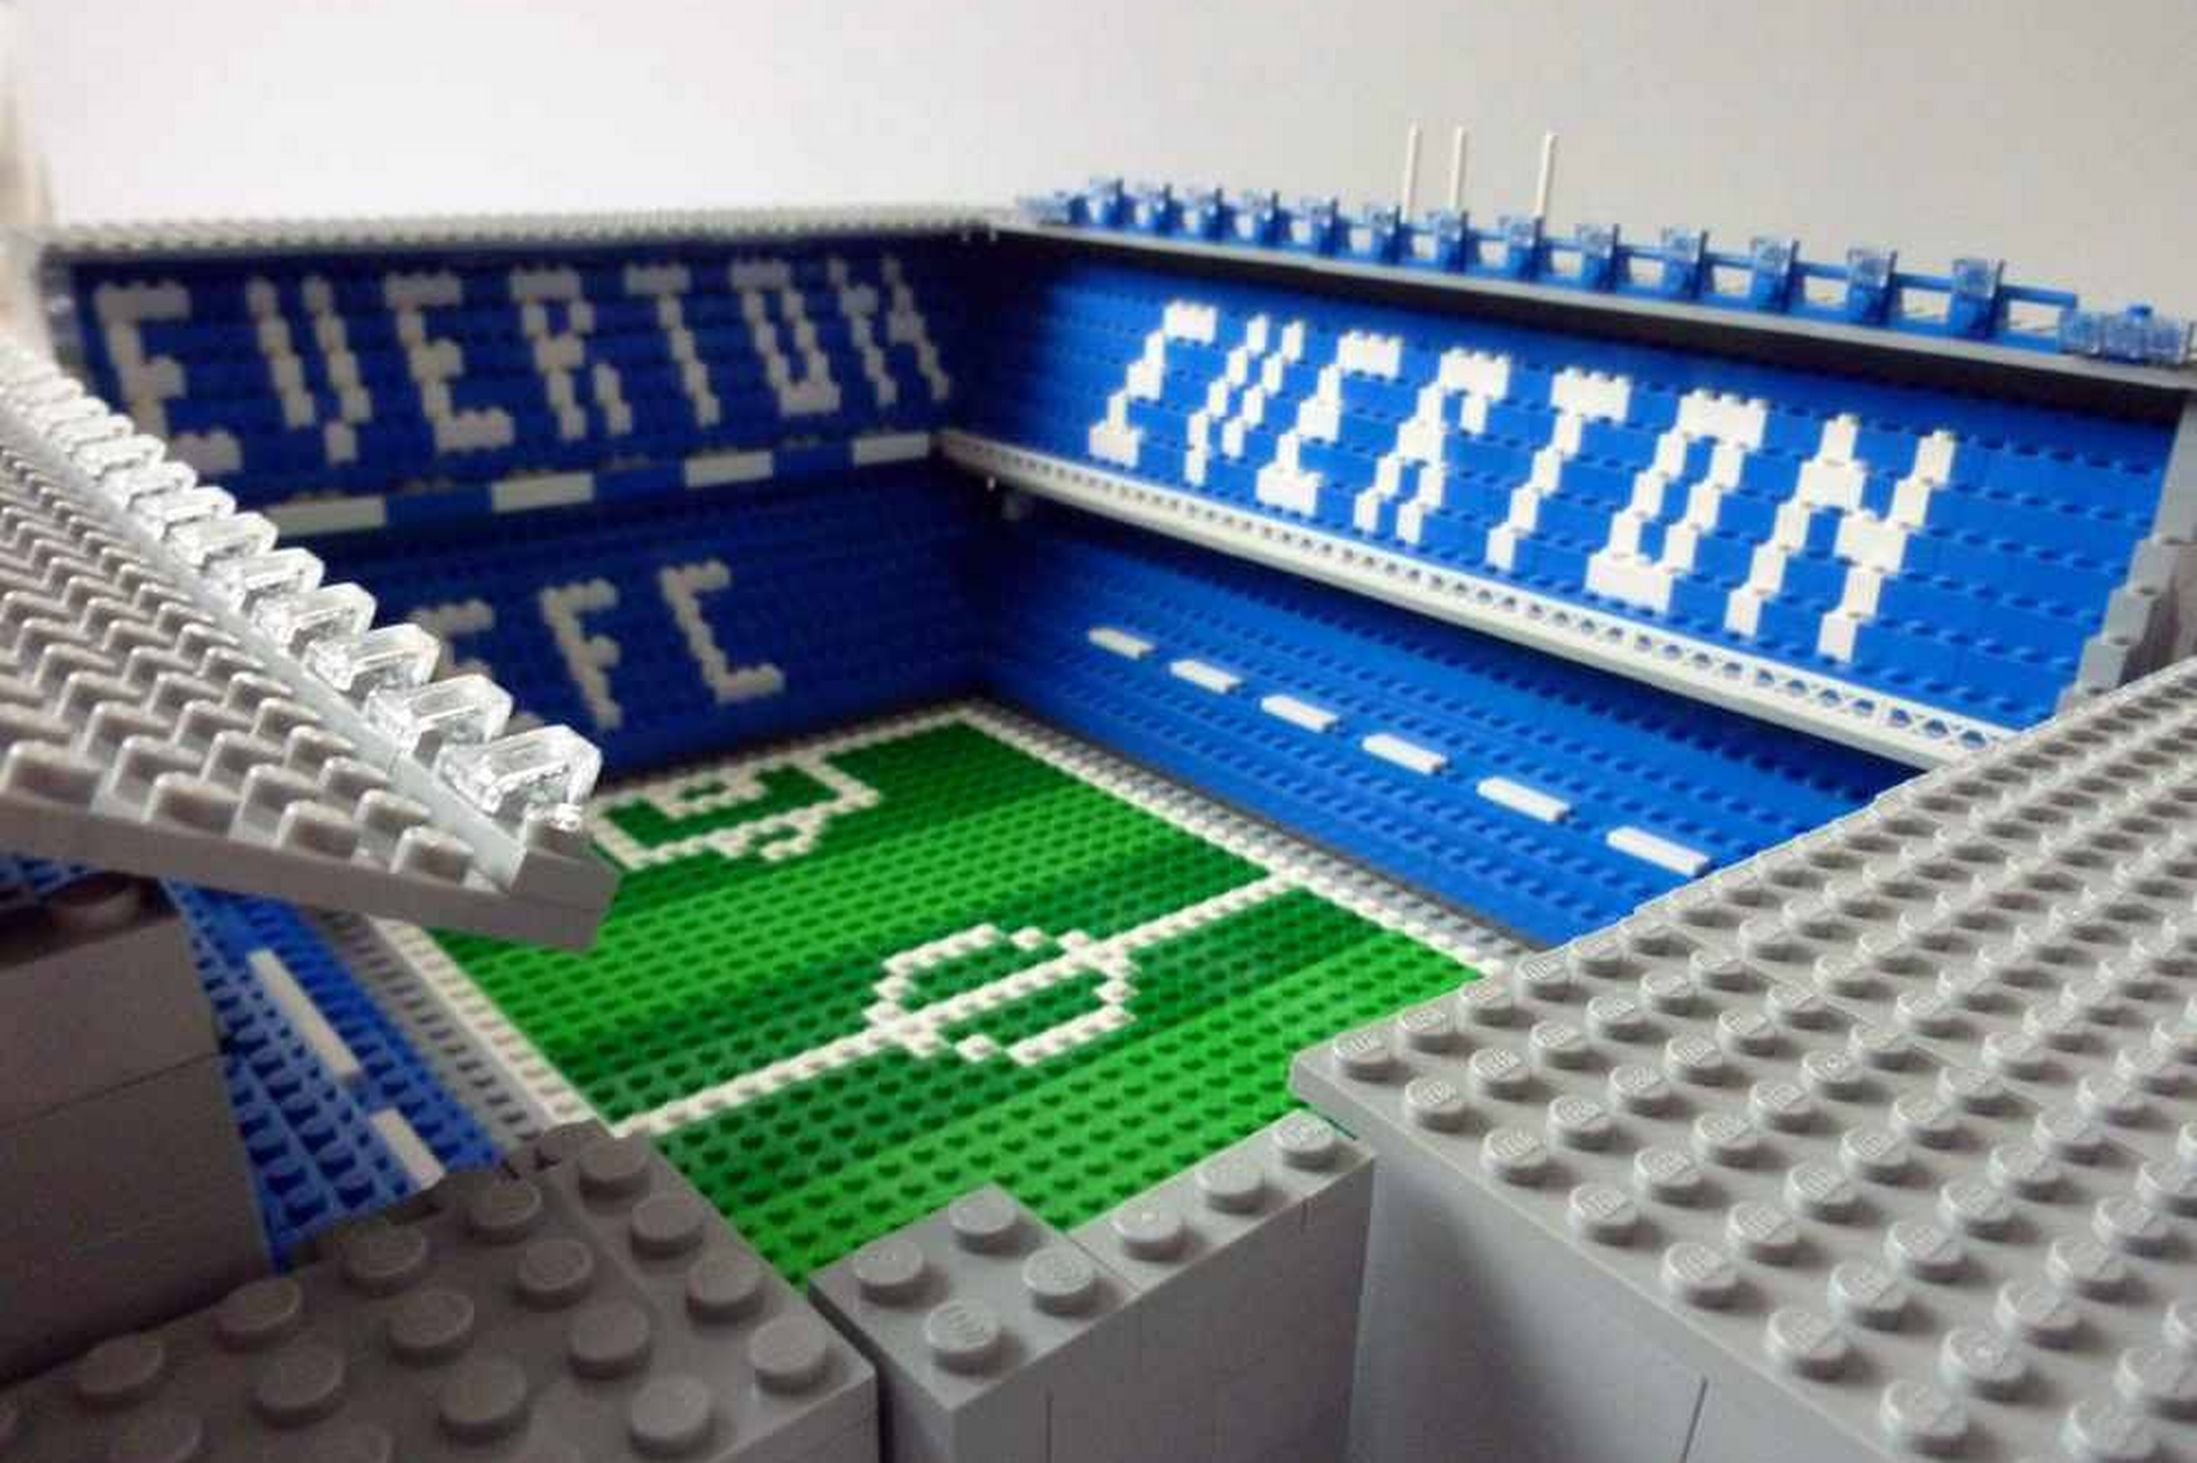 Anfield and Goodison Park built from LEGO